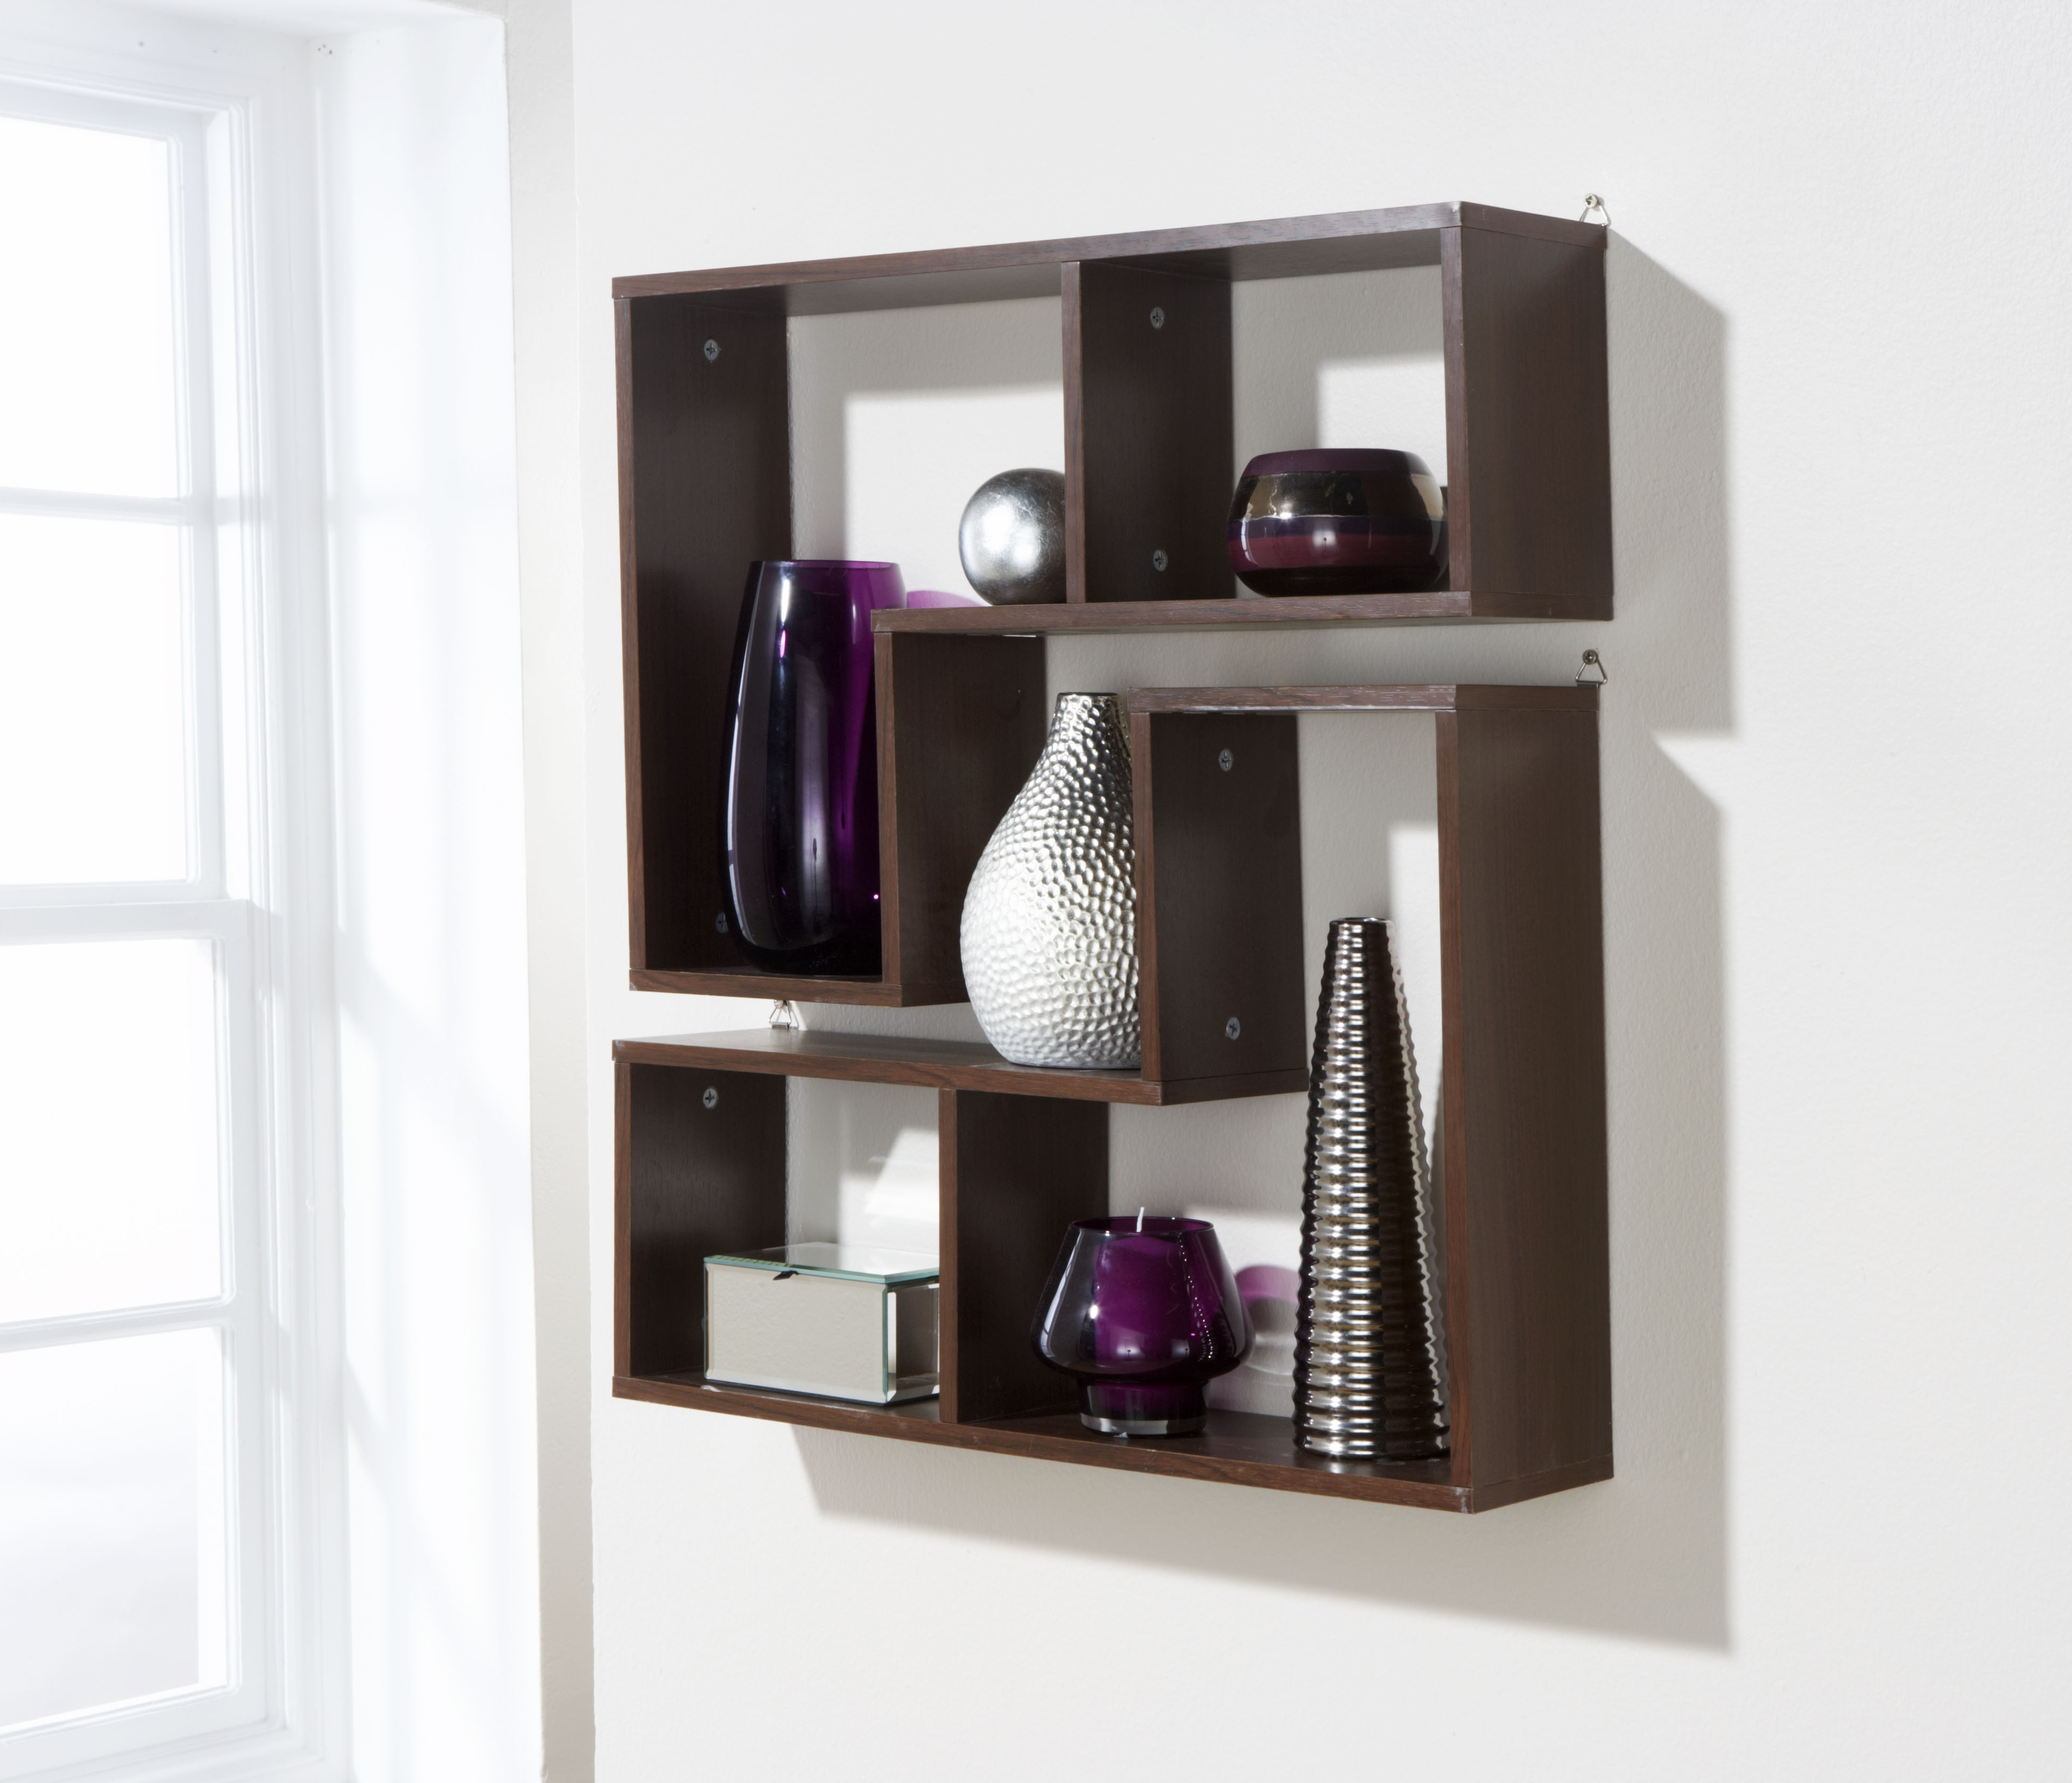 Full Wall Shelving Units With Regard To Trendy Decorative Full Wall Shelving Units – Wall Units Design Ideas (View 12 of 15)